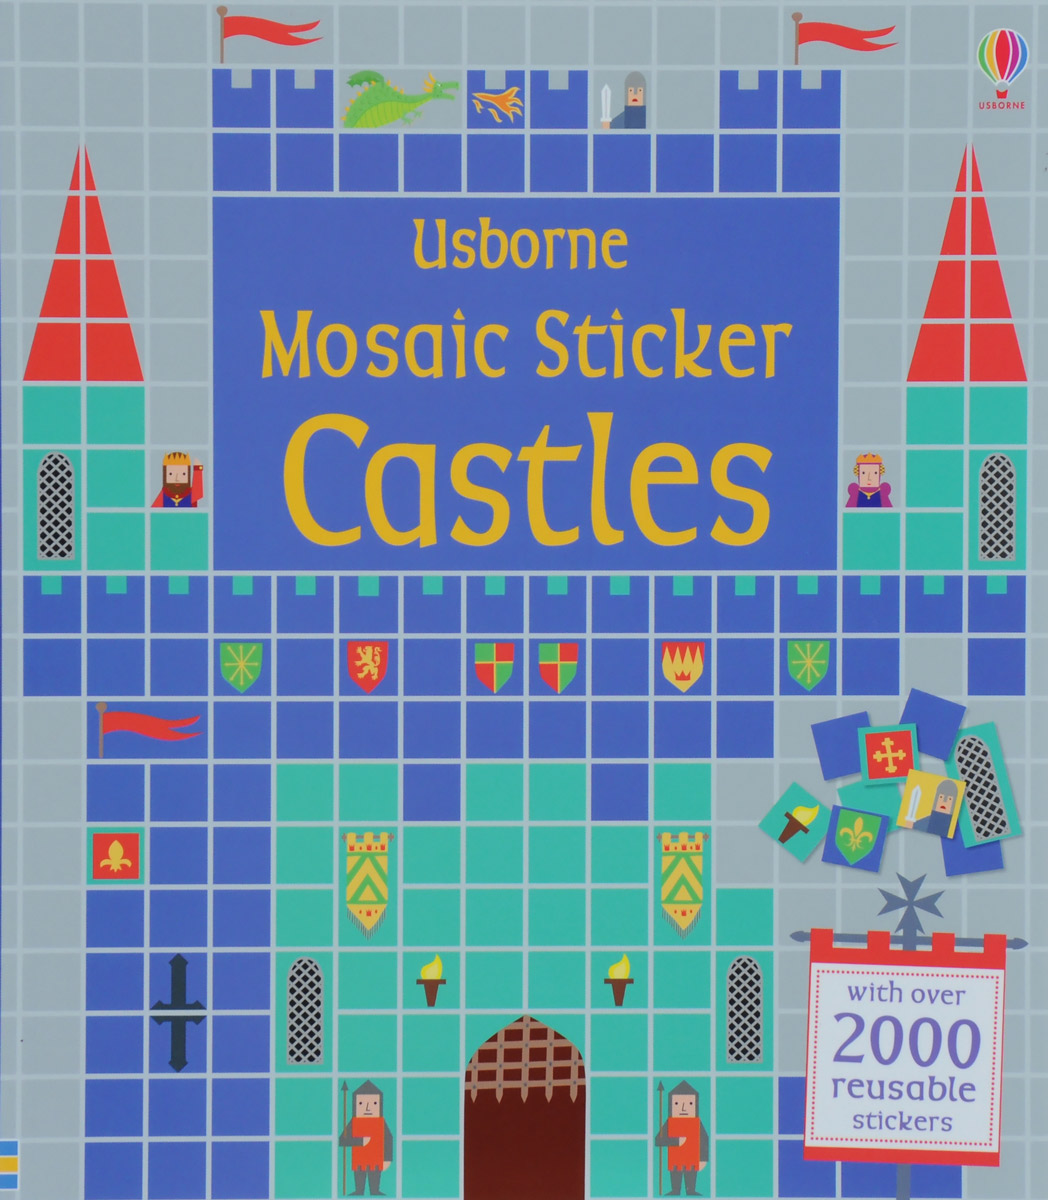 Mosaic Sticker Castles bugs sticker book 400 reusable stickers